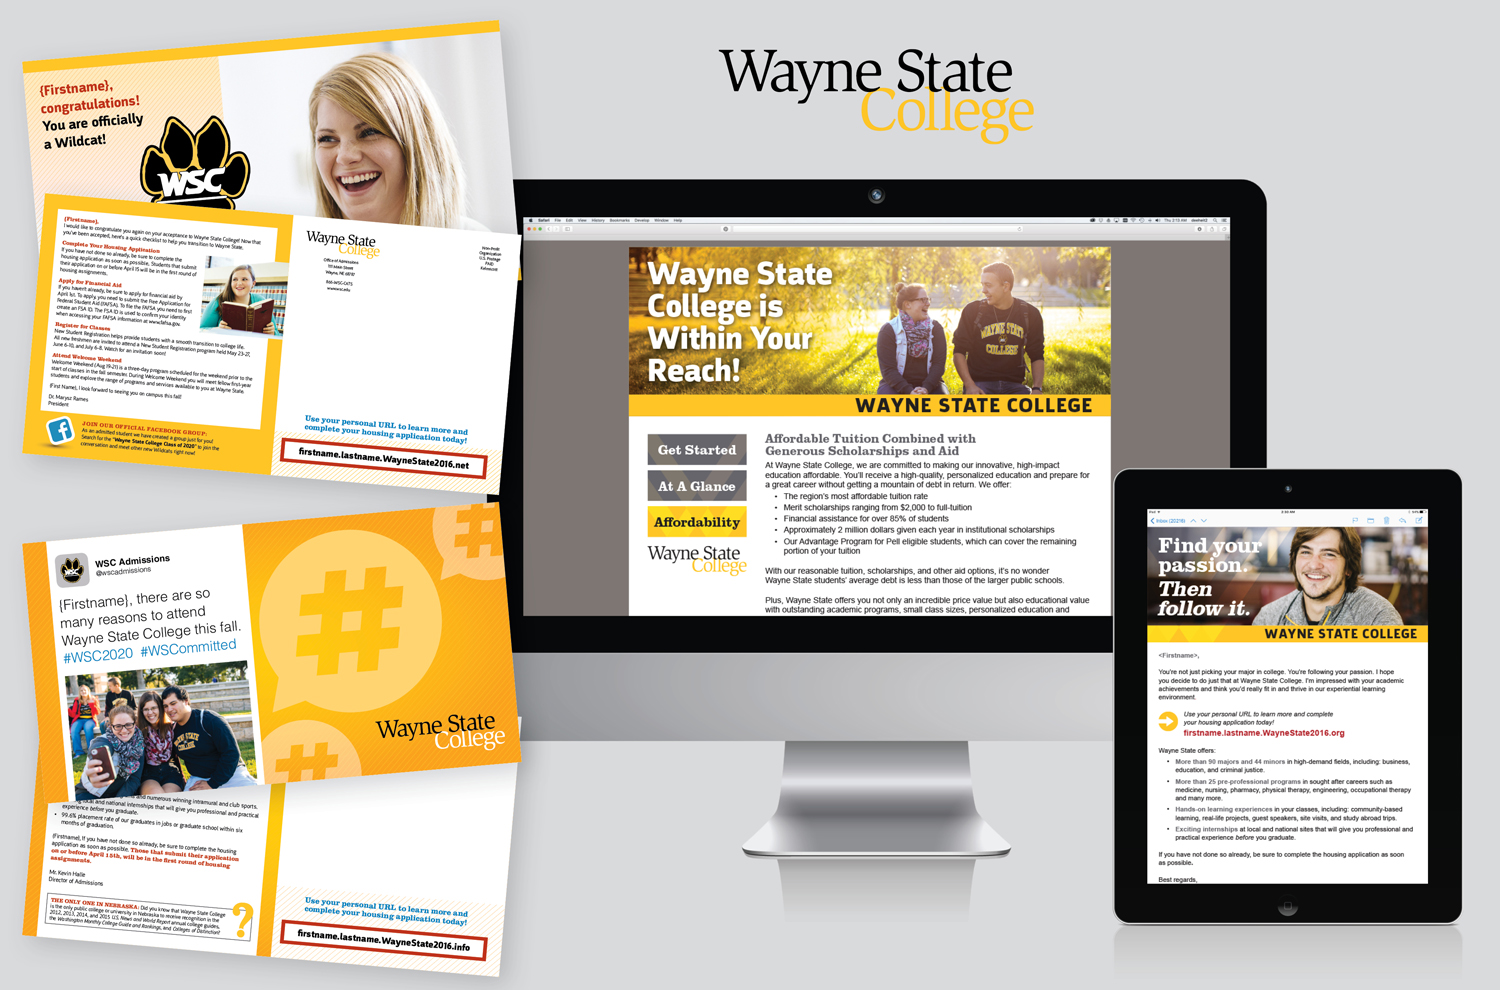 ADMITTED STUDENT ENGAGEMENT CAMPAIGN FOR WAYNE STATE COLLEGE